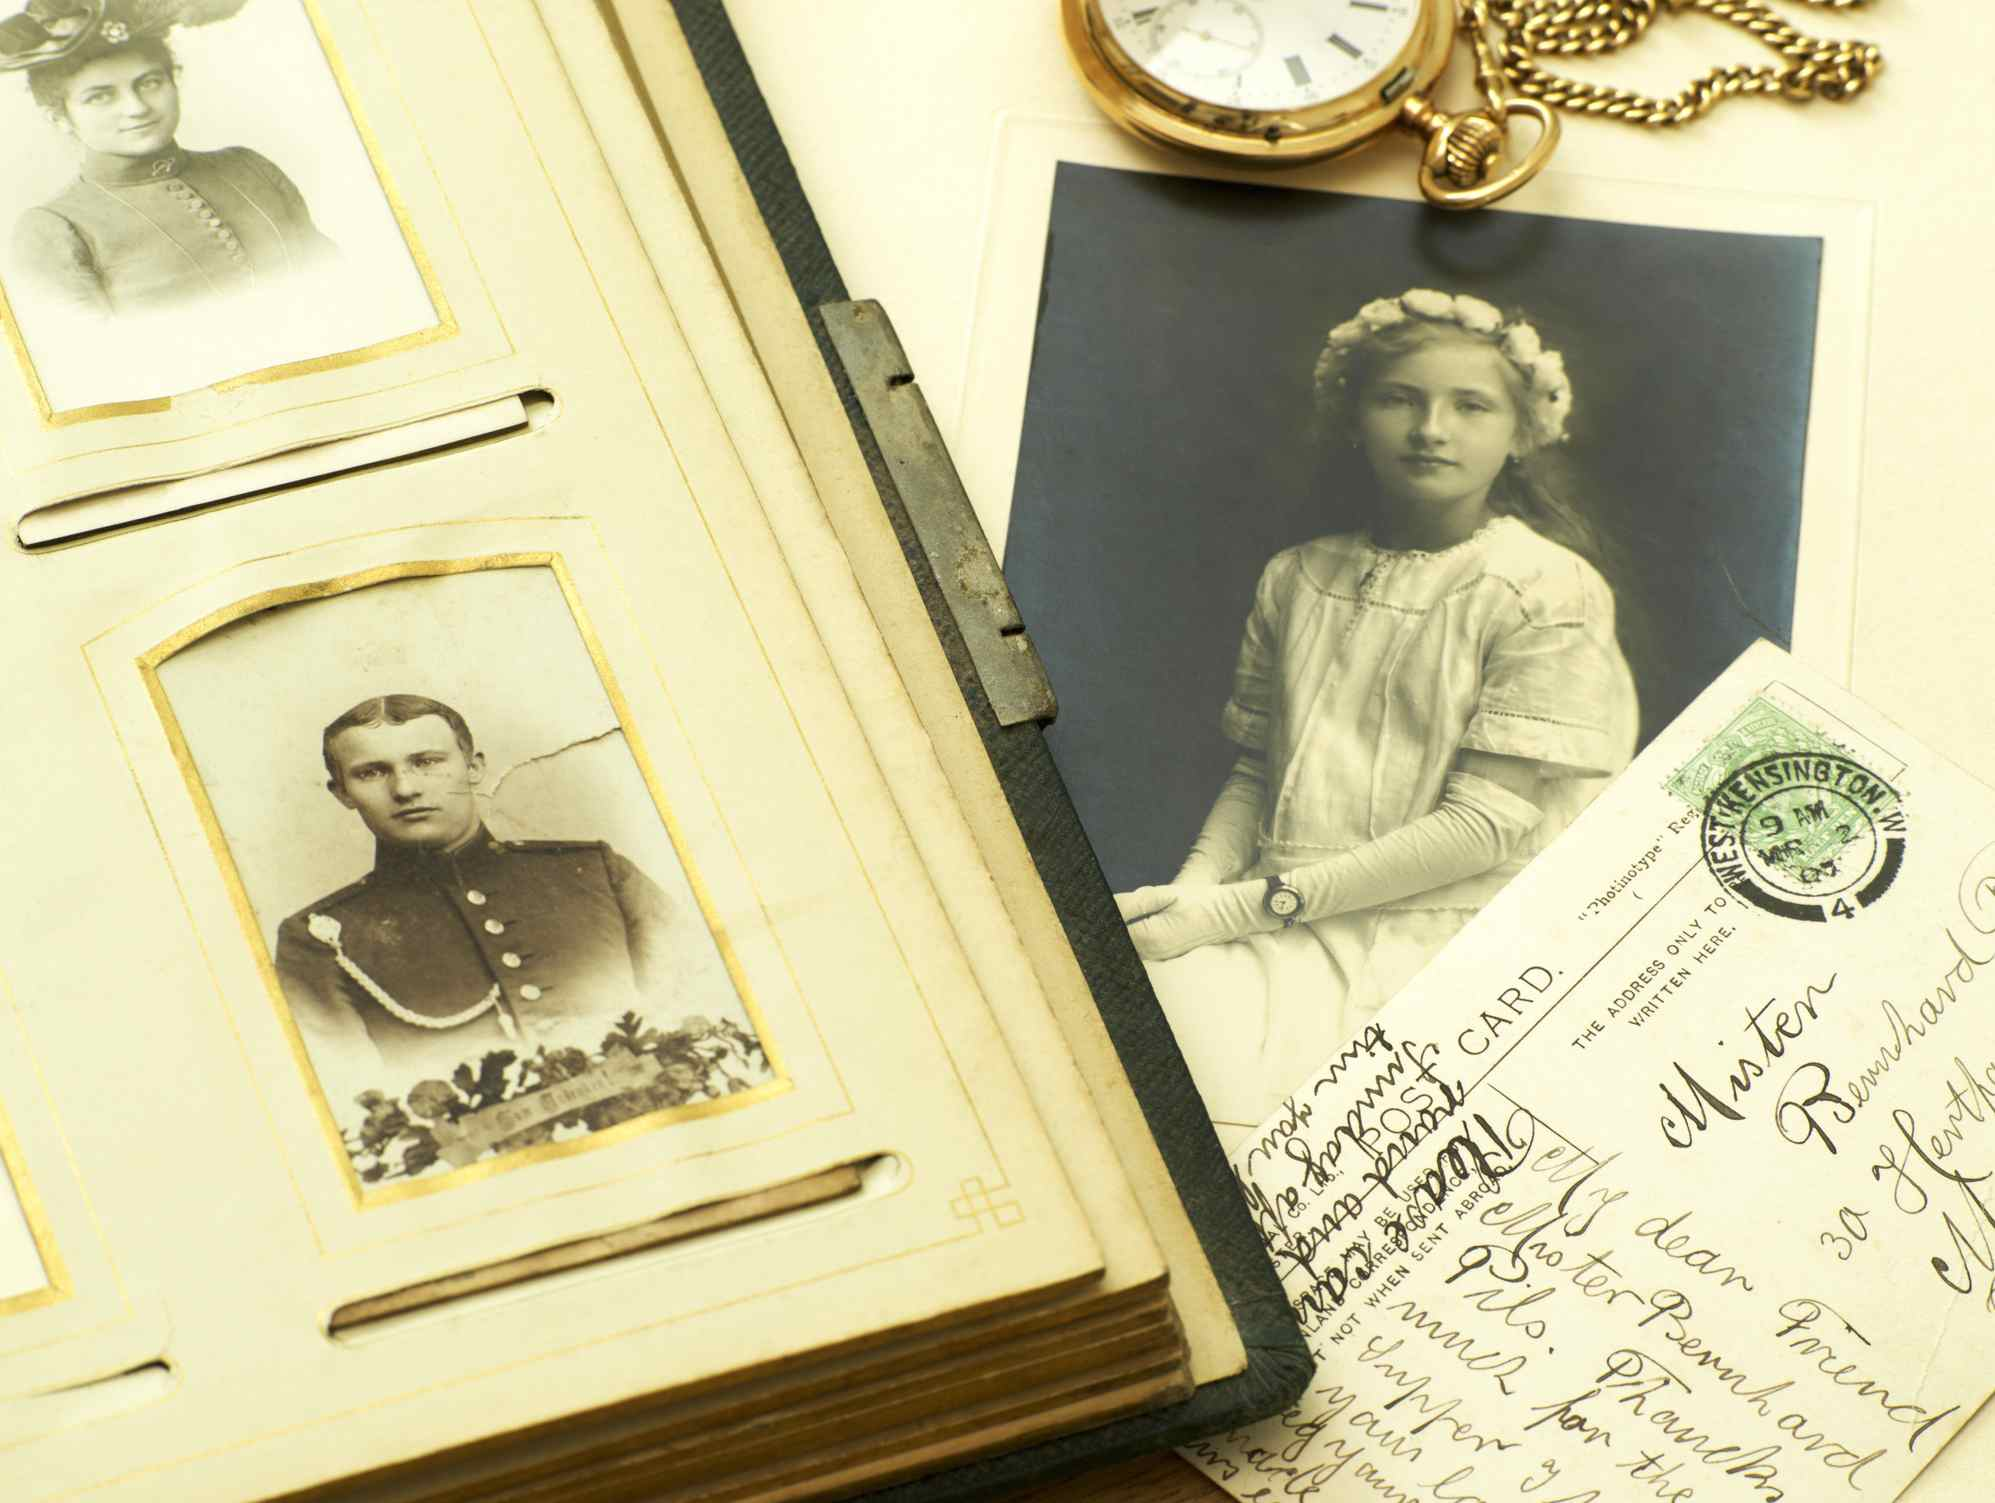 Photographs with postcard and pocket watch